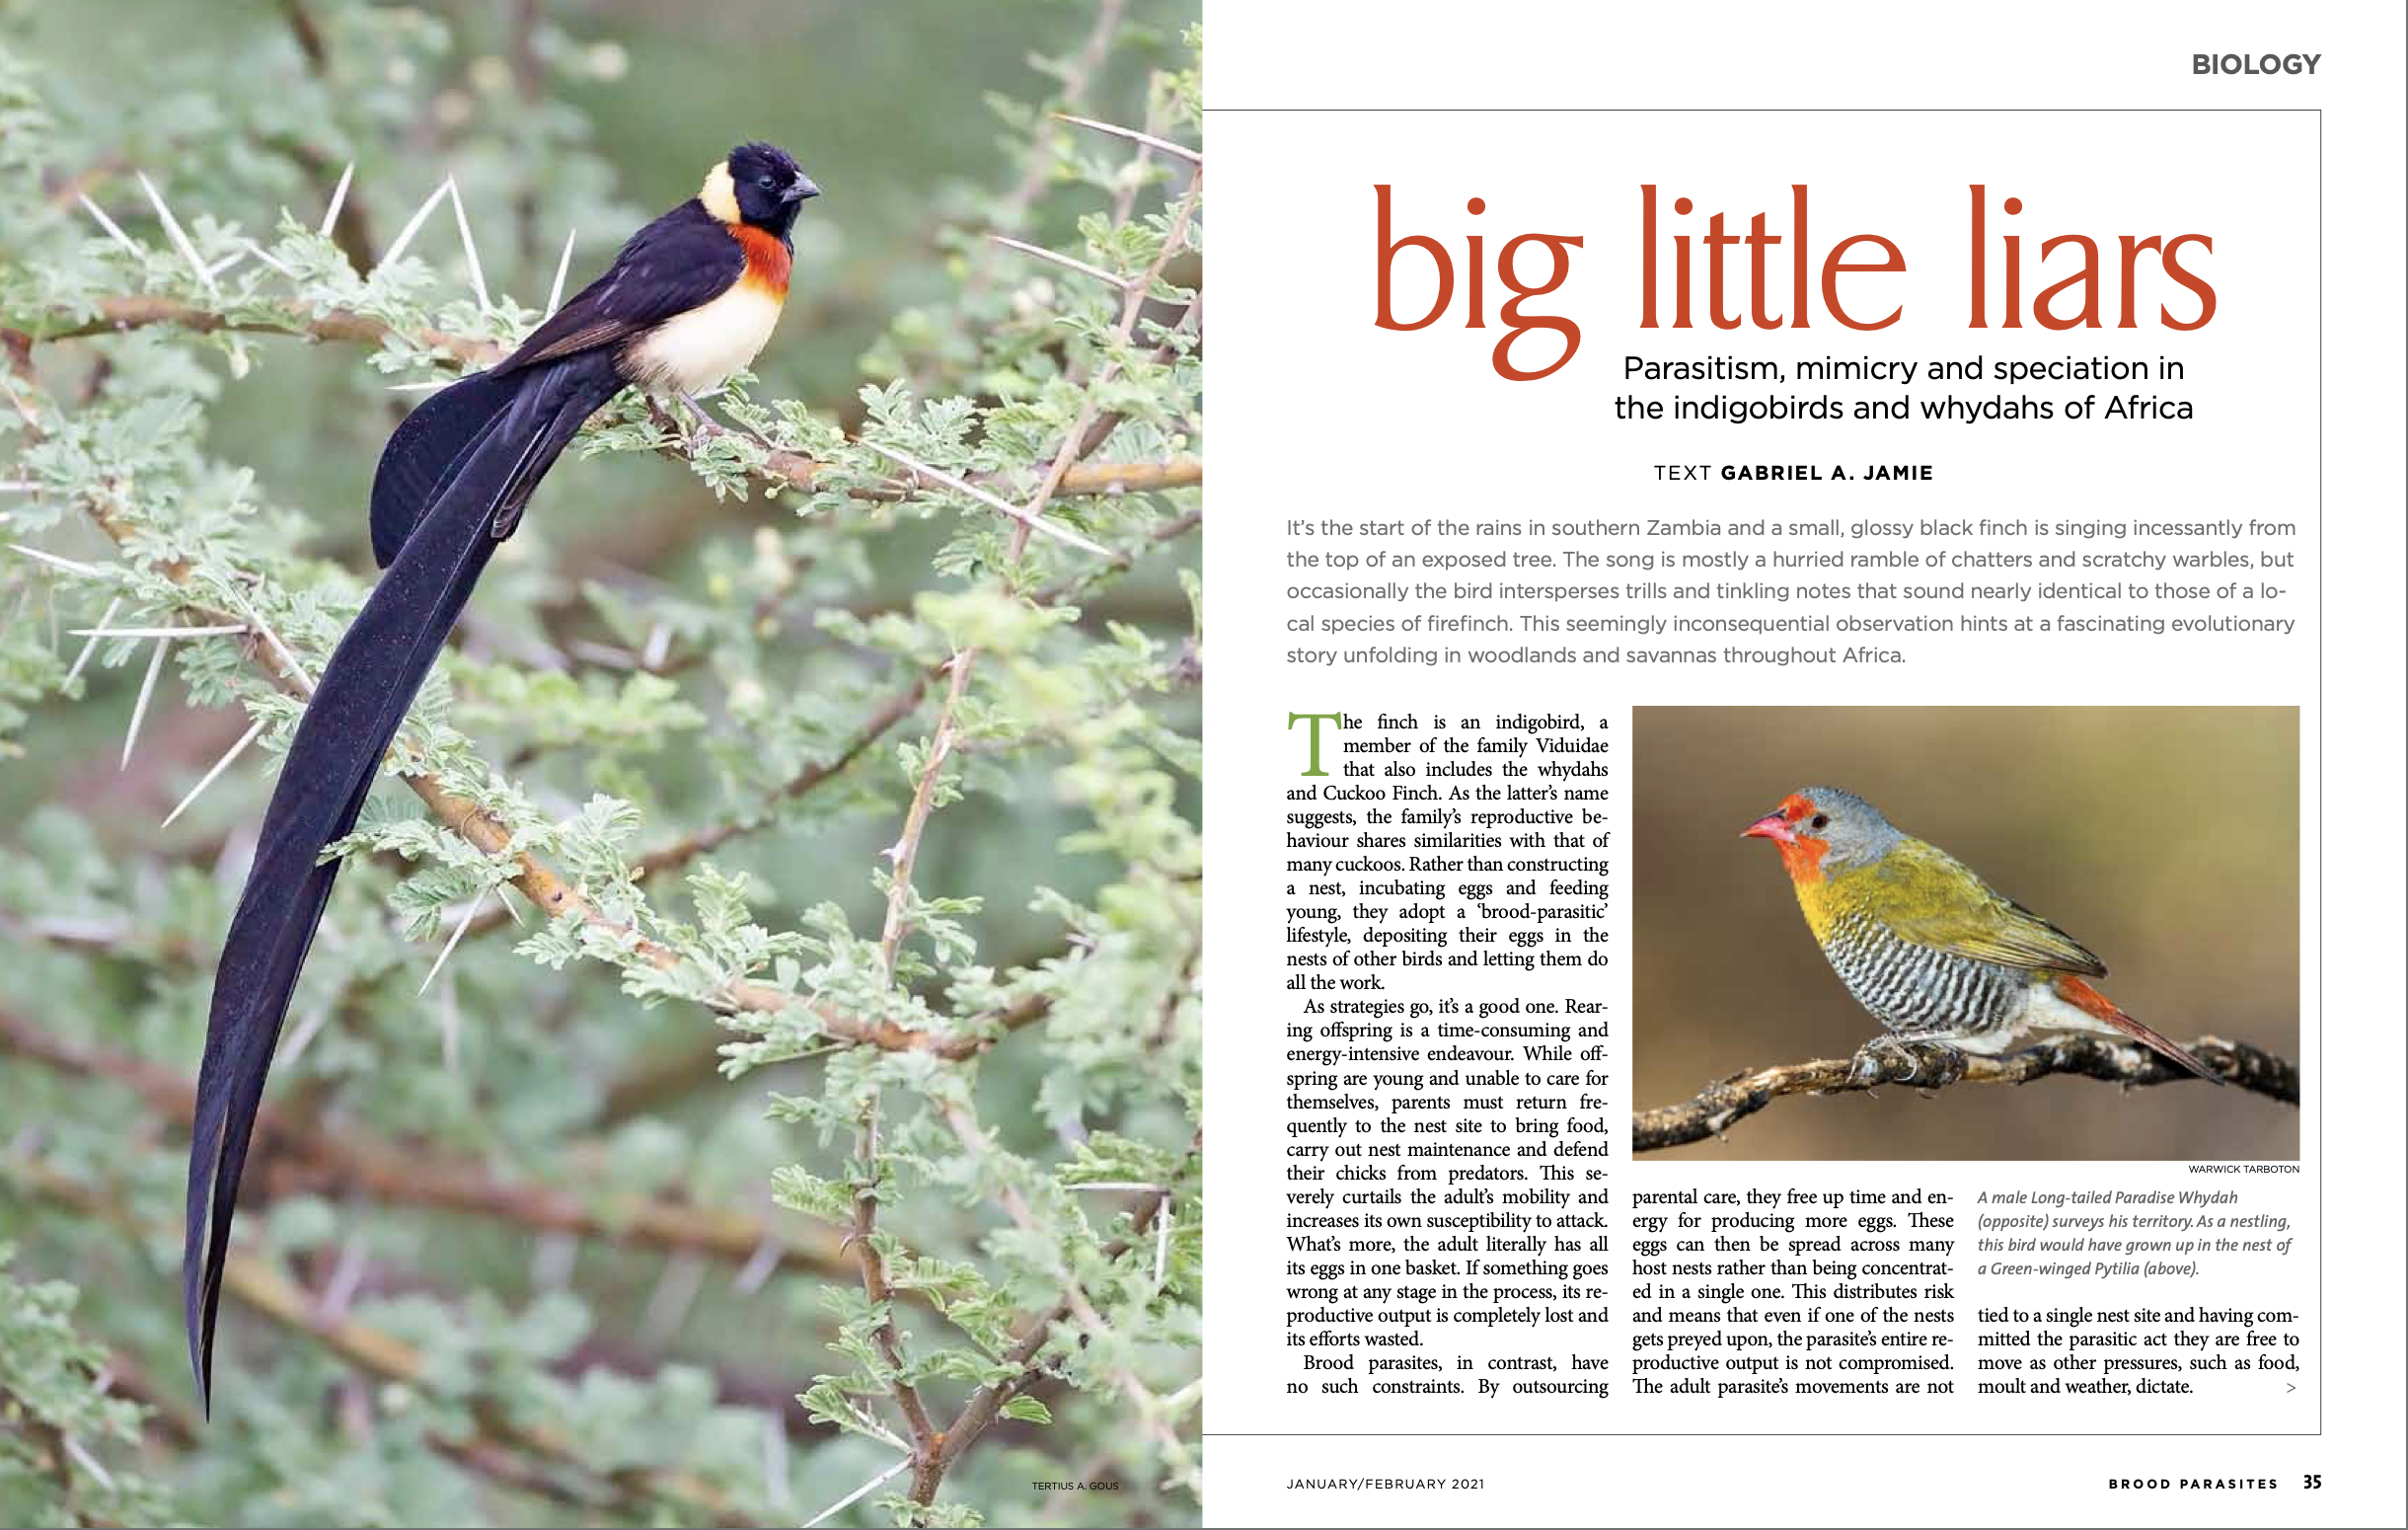 New articles in African Birdlife and The Conversation Africa: parasitism, mimicry and speciation in Africa's parasitic finches